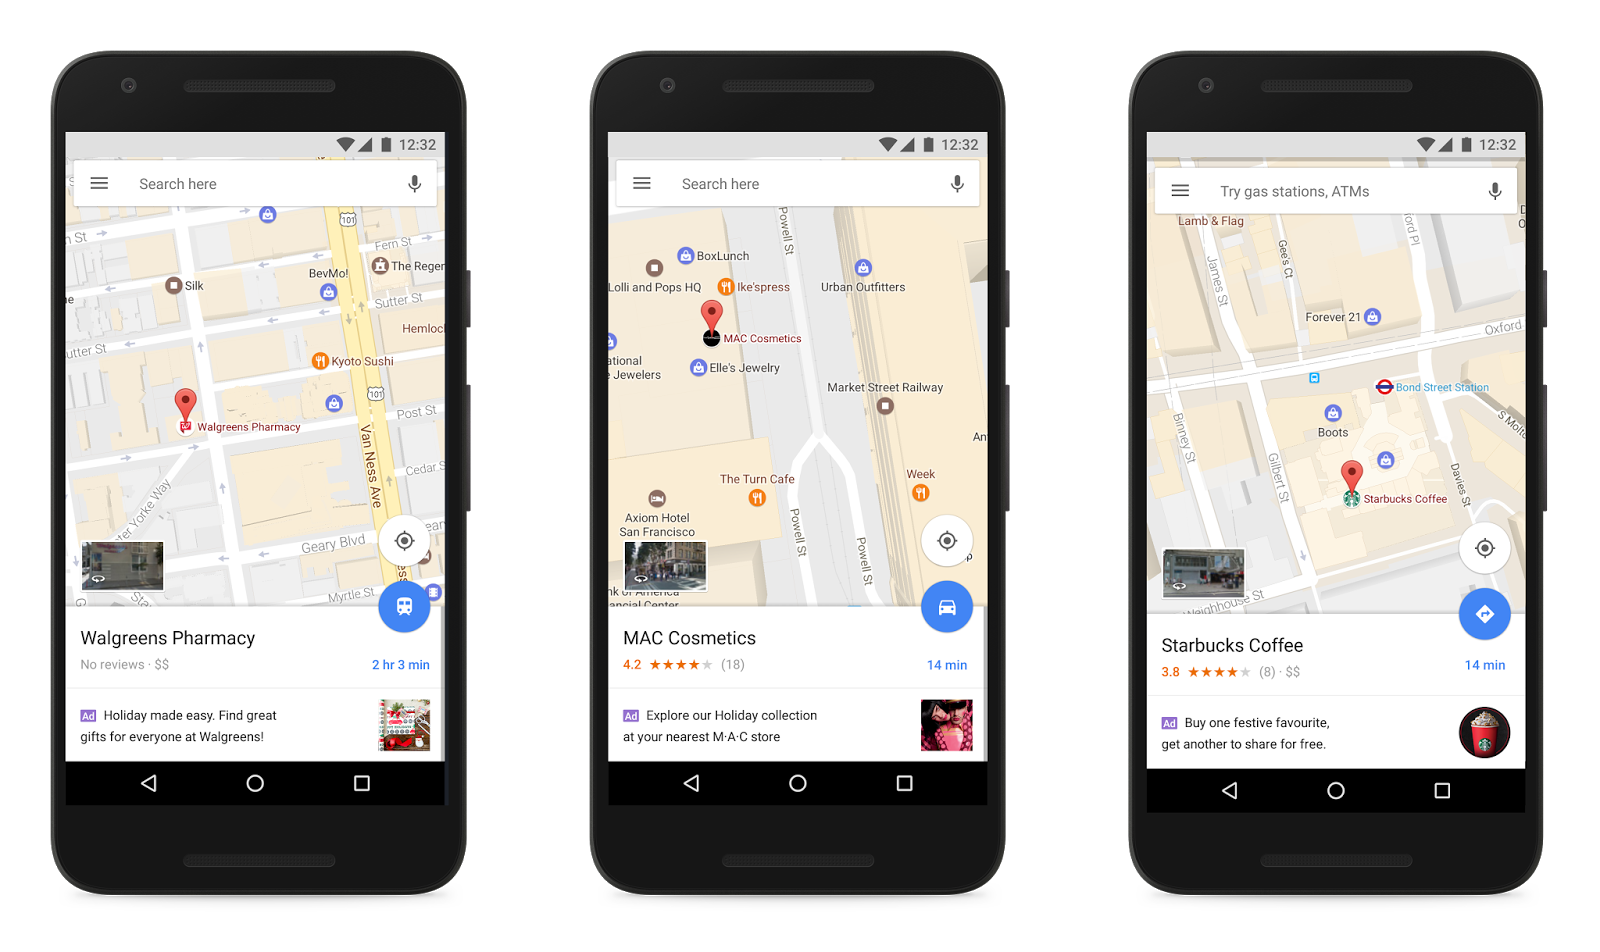 Promoted Places Pins in Google Maps on Android